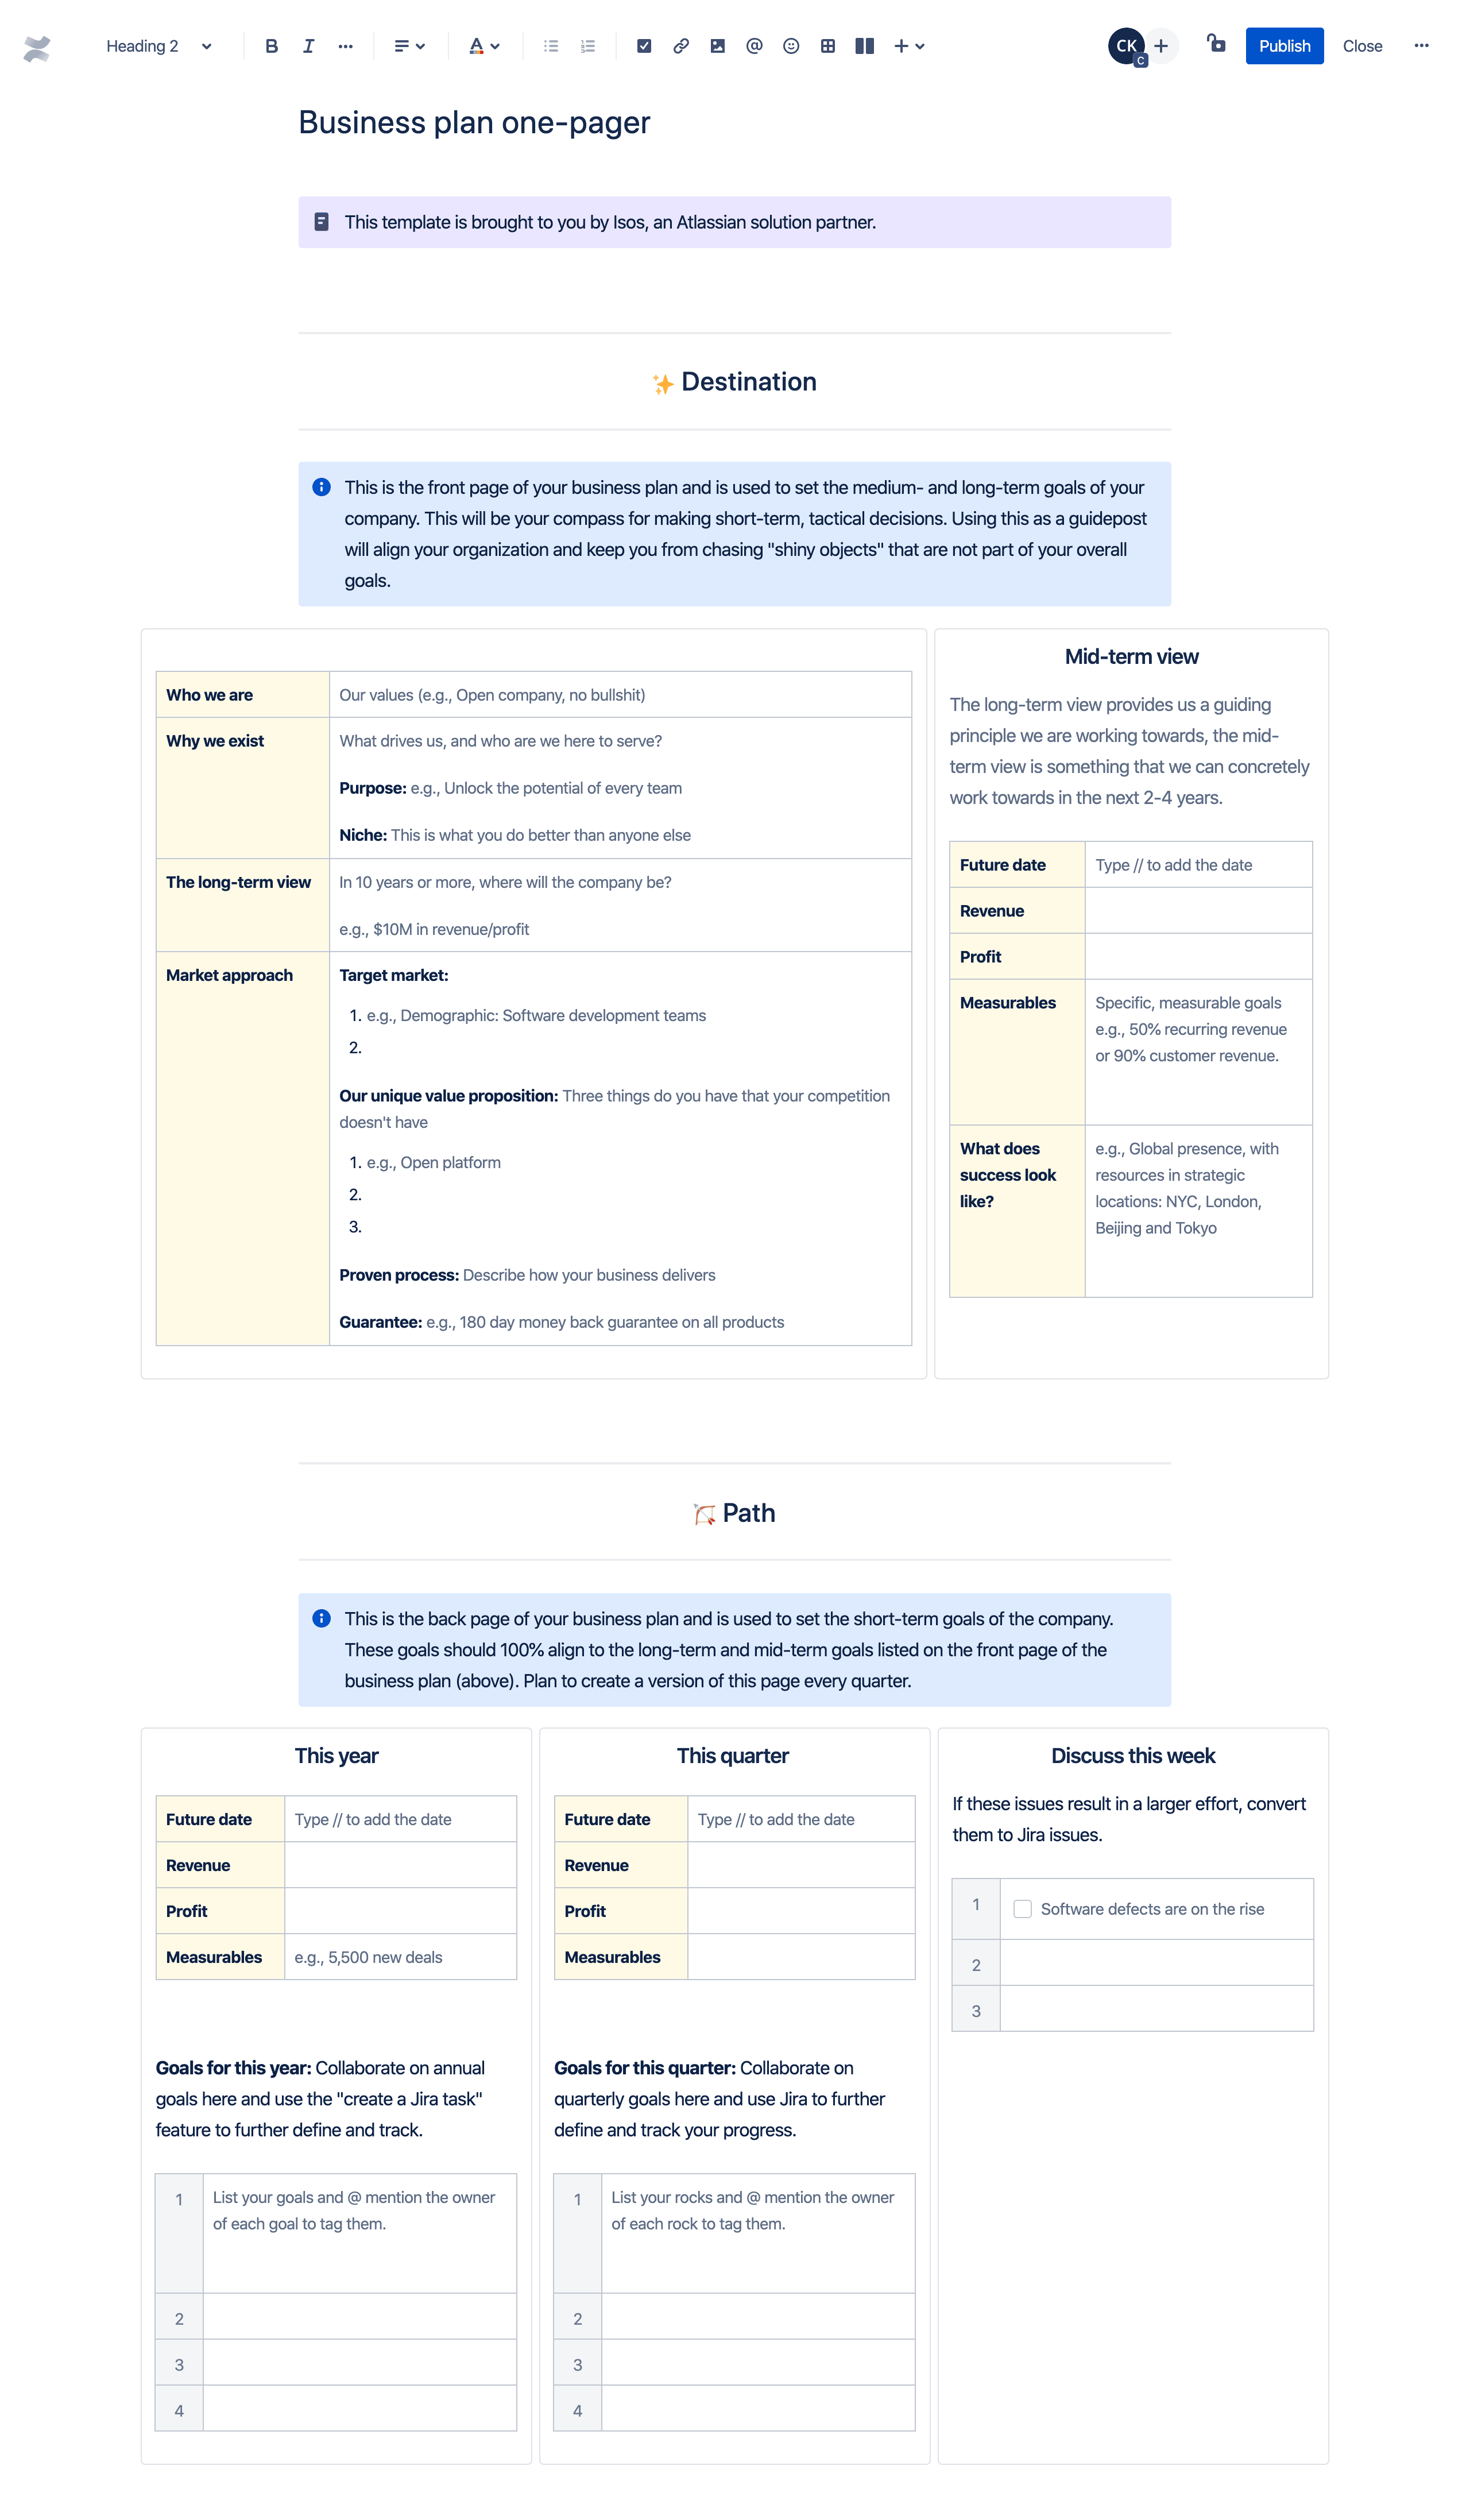 Business plan one-pager template